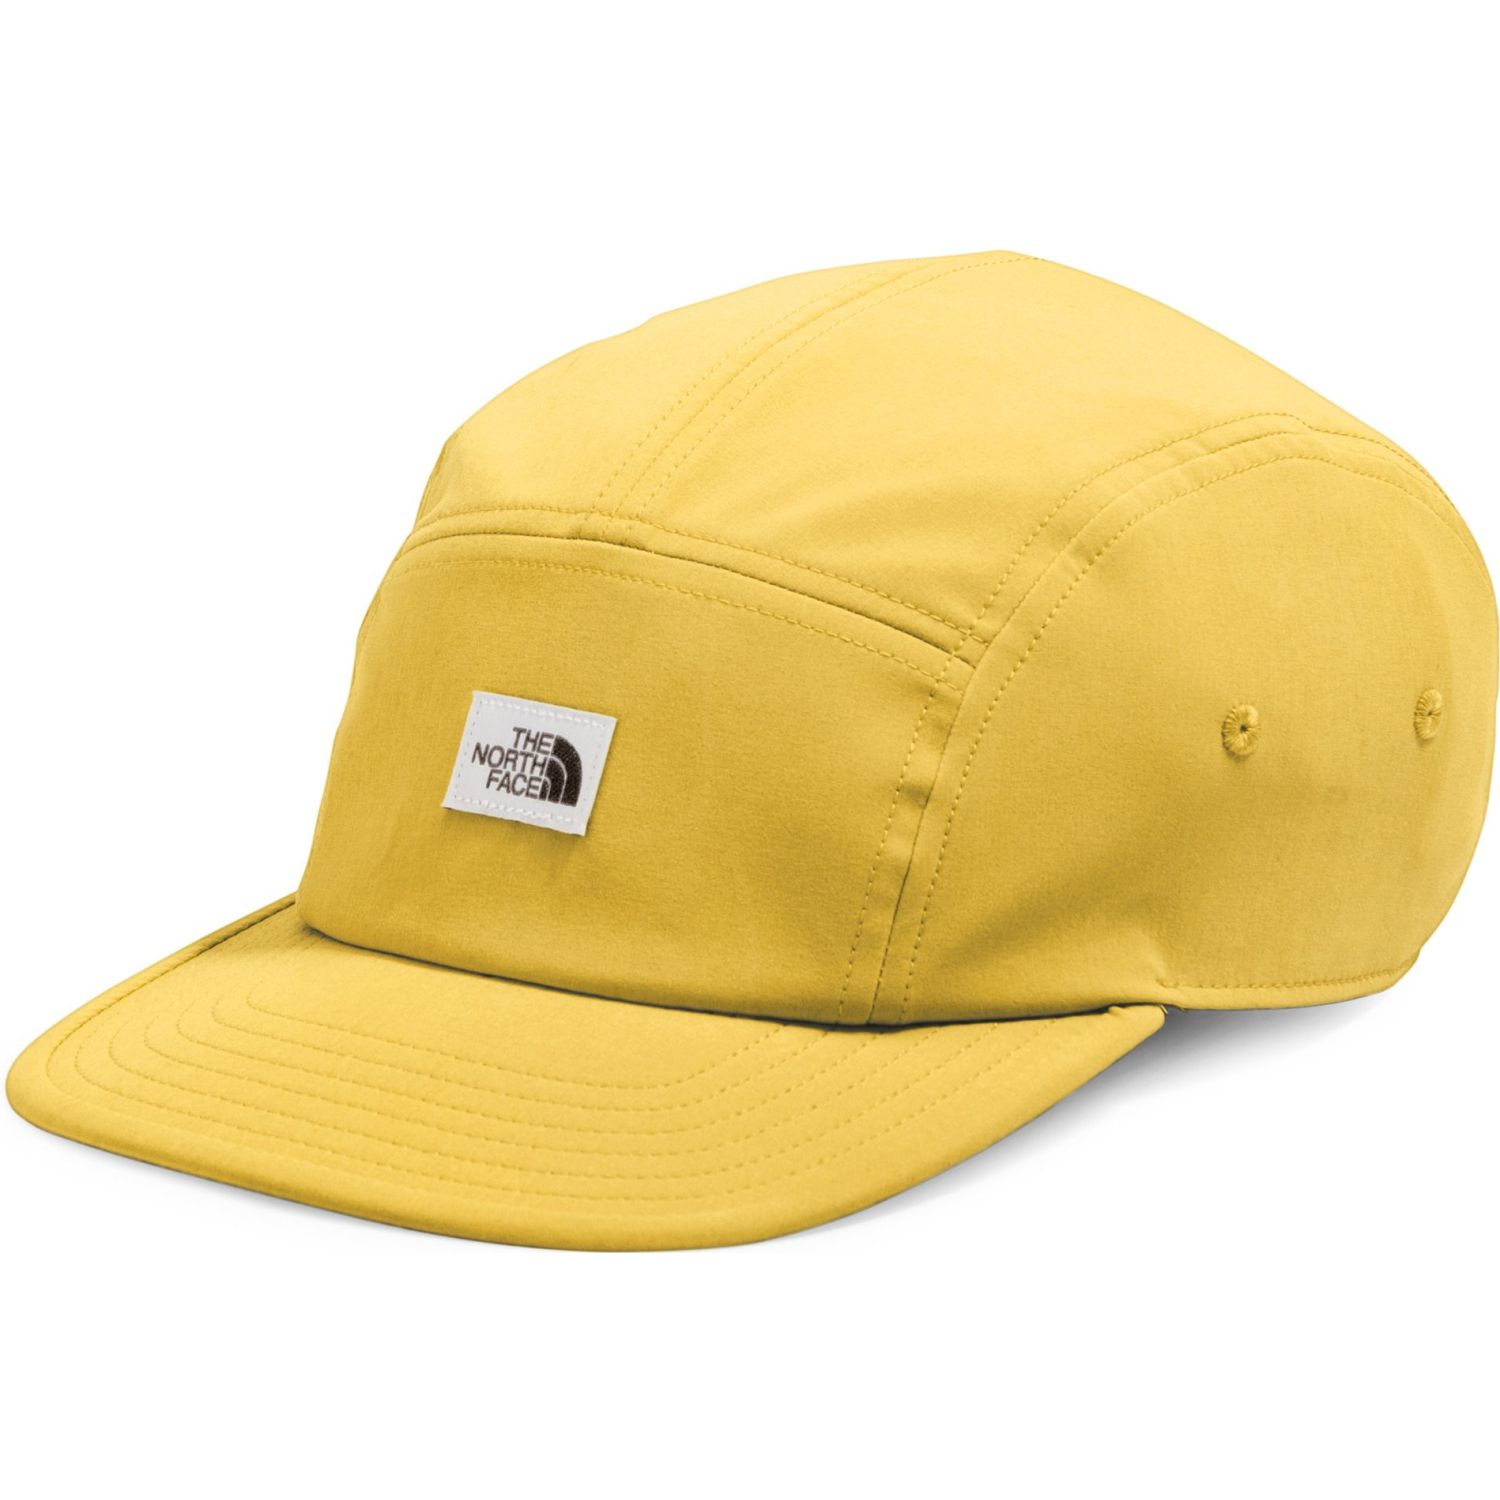 The North Face Marina Camp Hat Amarillo Gorras de béisbol